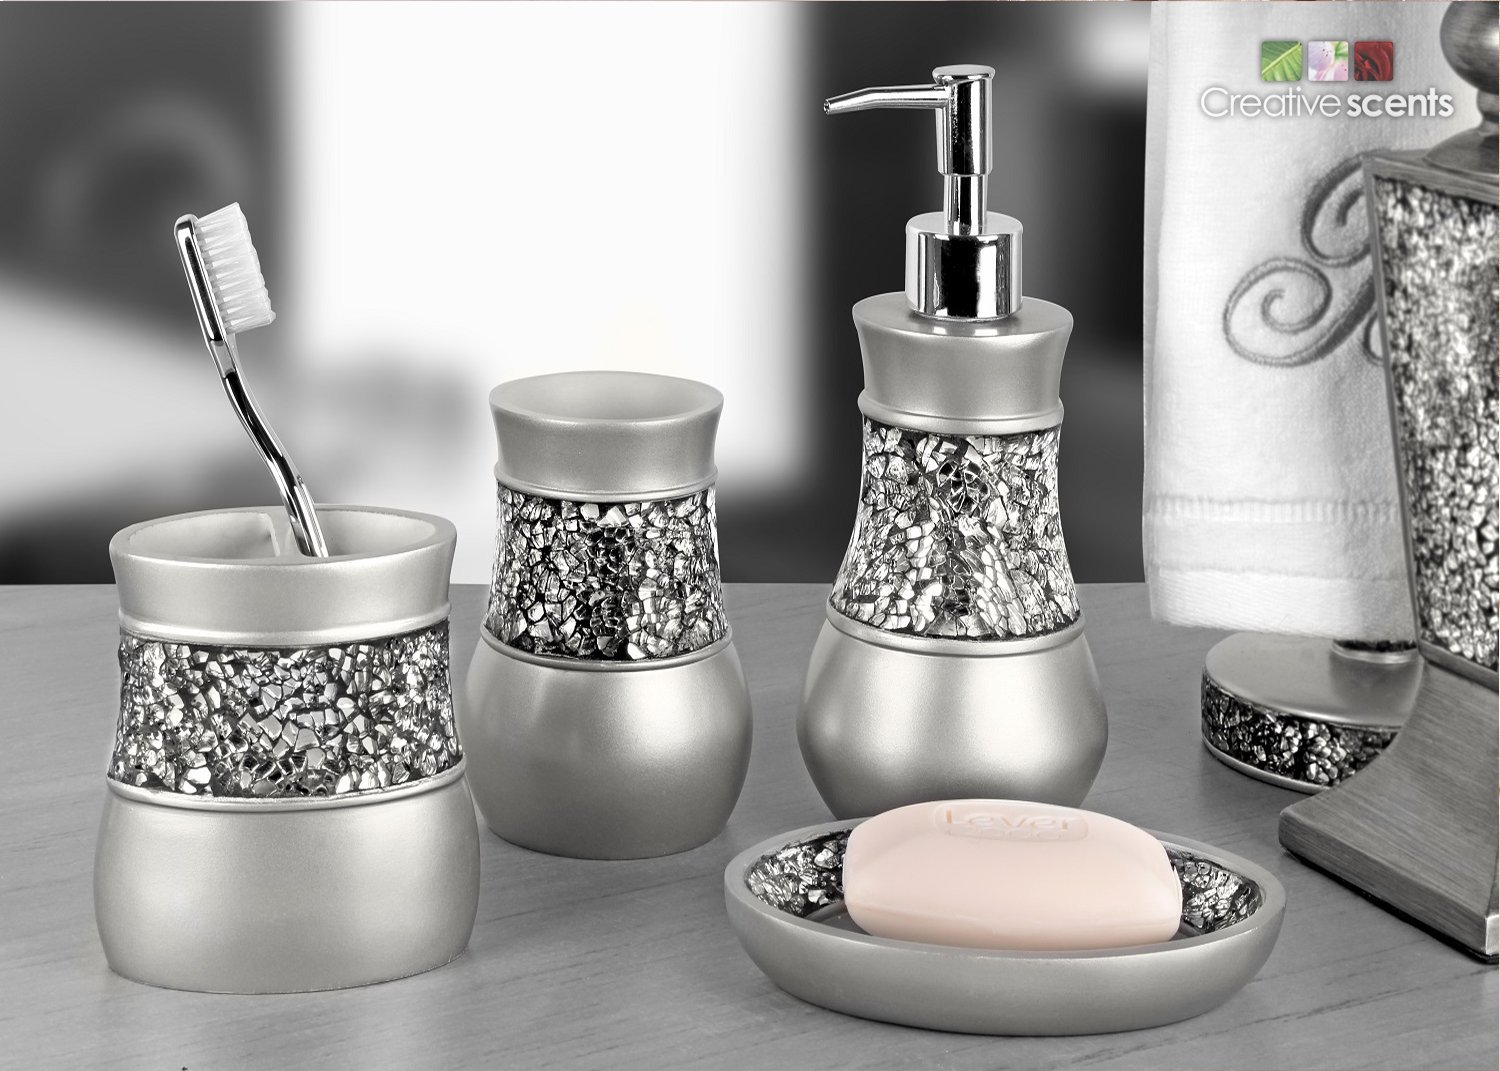 crackle bathroom accessories. Amazon Com  Creative Scents Brushed Nickel Bathroom Accessories Set 4 Piece Bath Ensemble Collection Features Soap Dispenser Pump